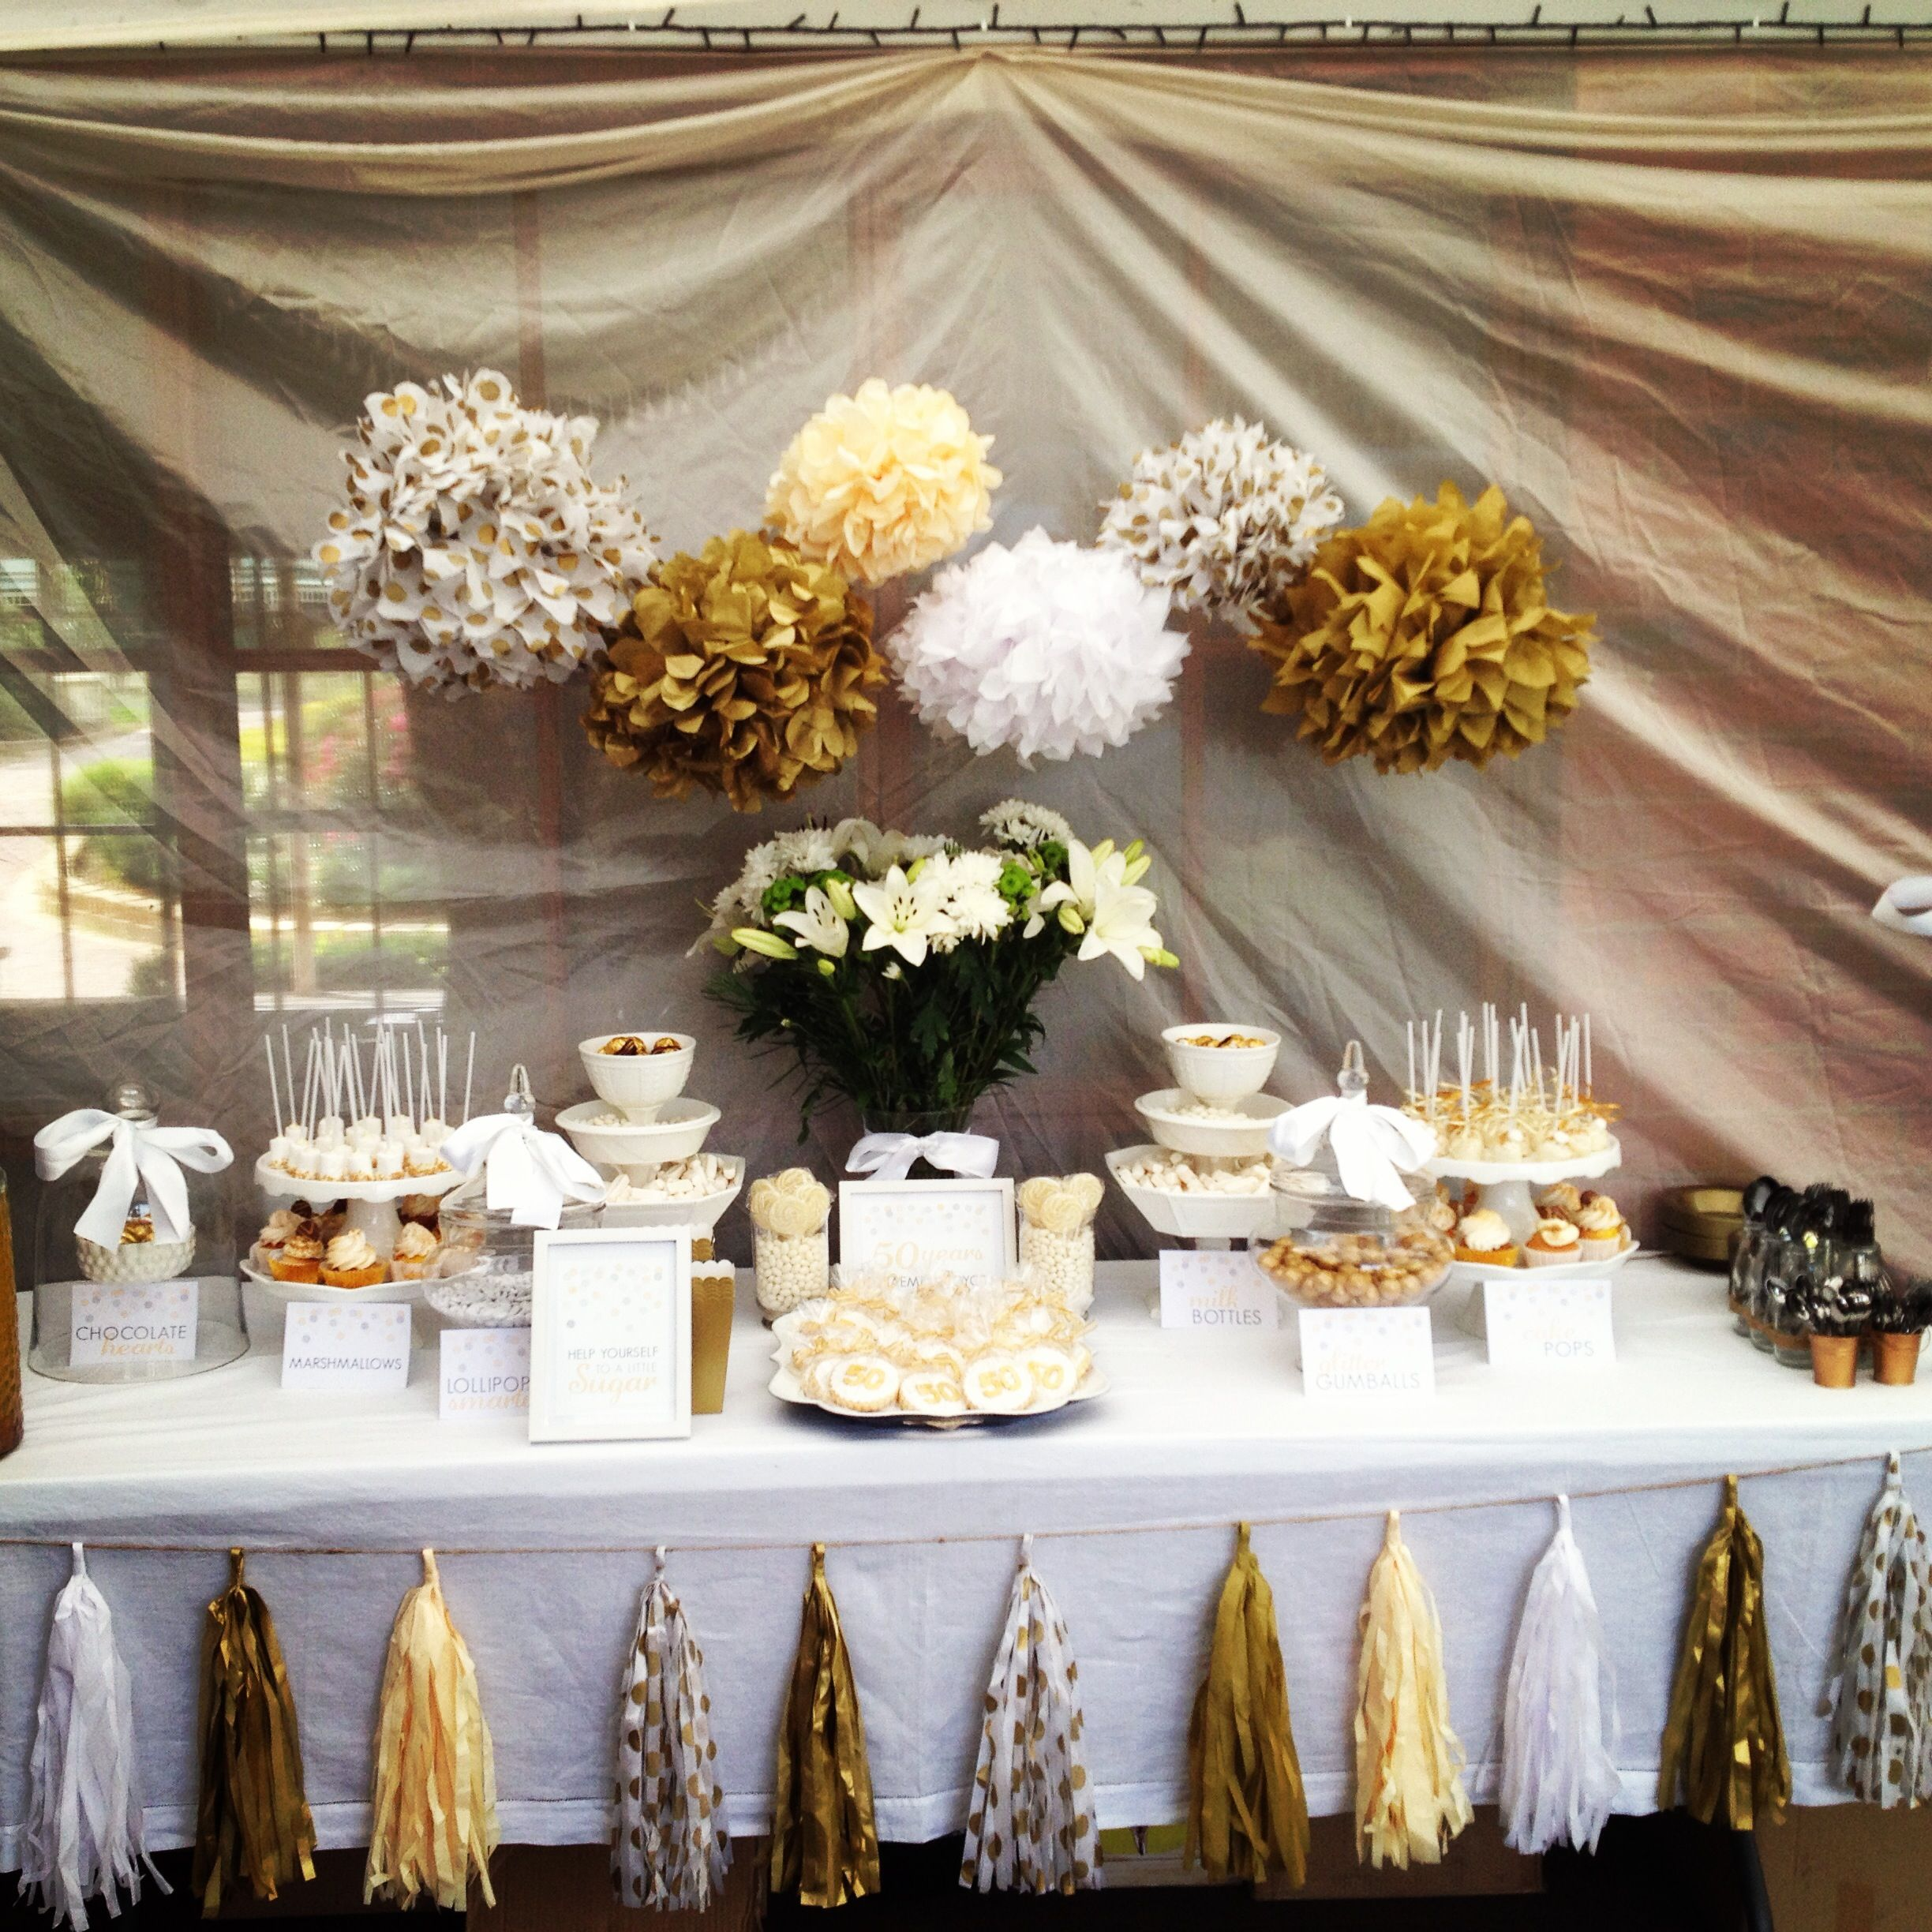 Polkadot parties 50th wedding anniversary Entertaining ideas